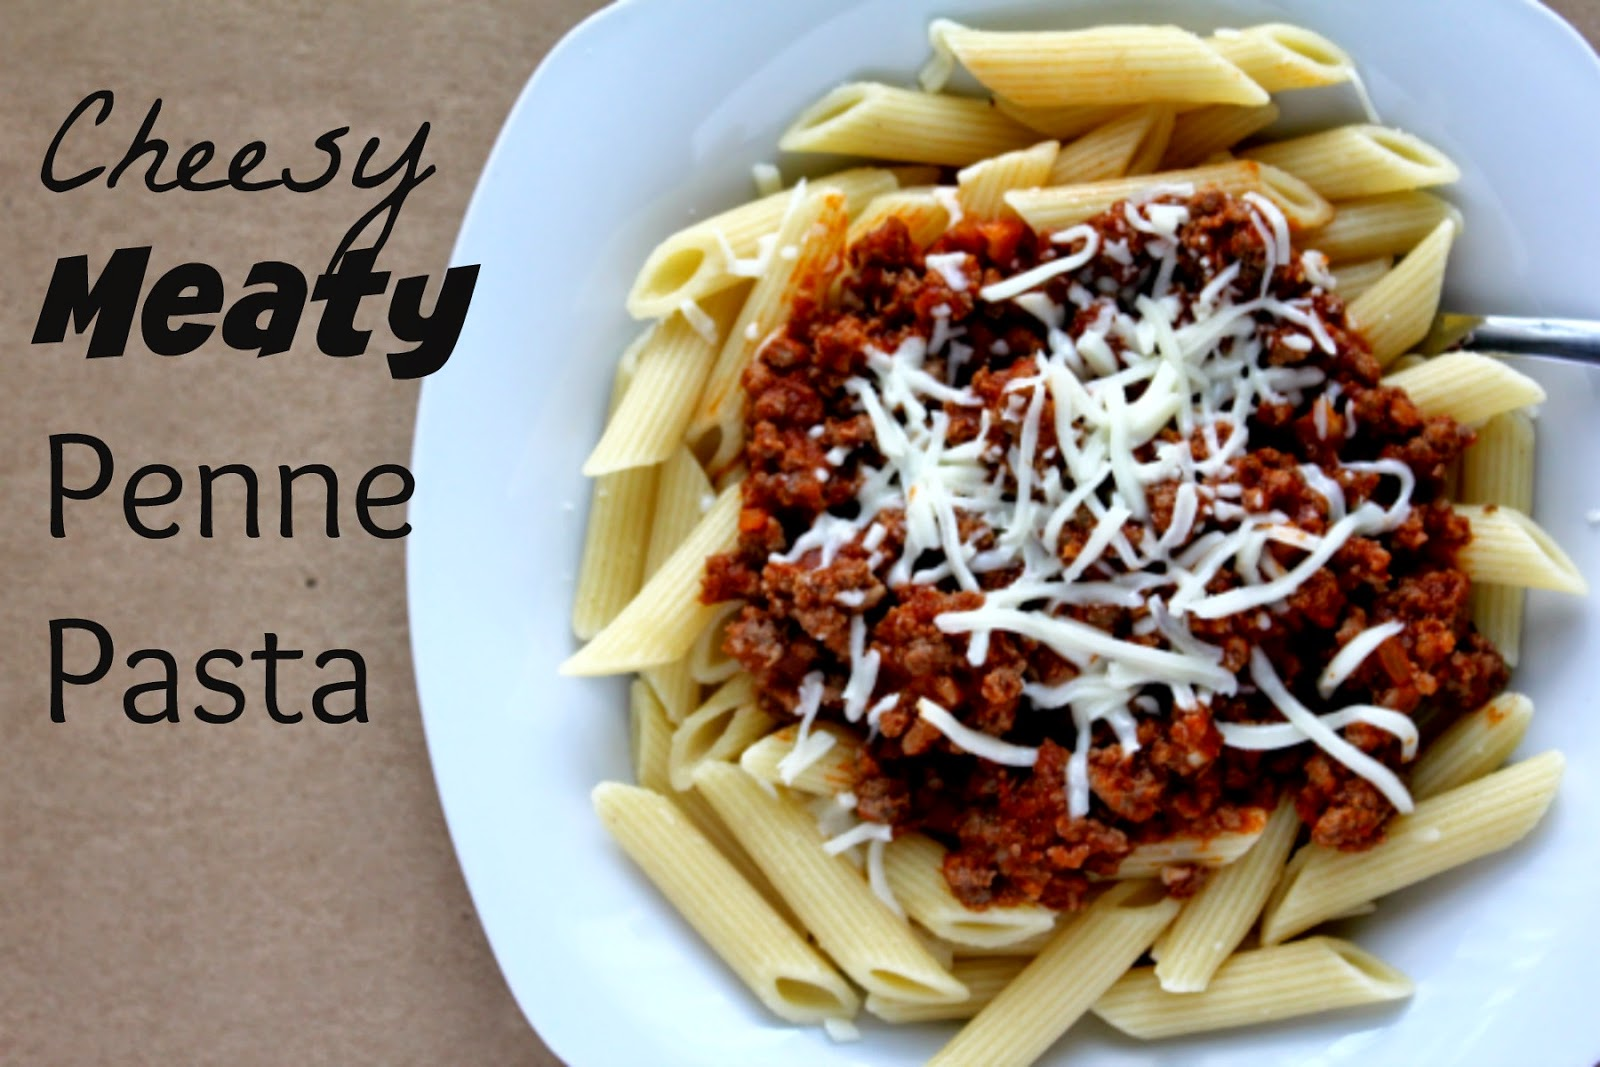 try this Cheesy Meaty Penne Pasta tonight. I guarantee your family will love it!!